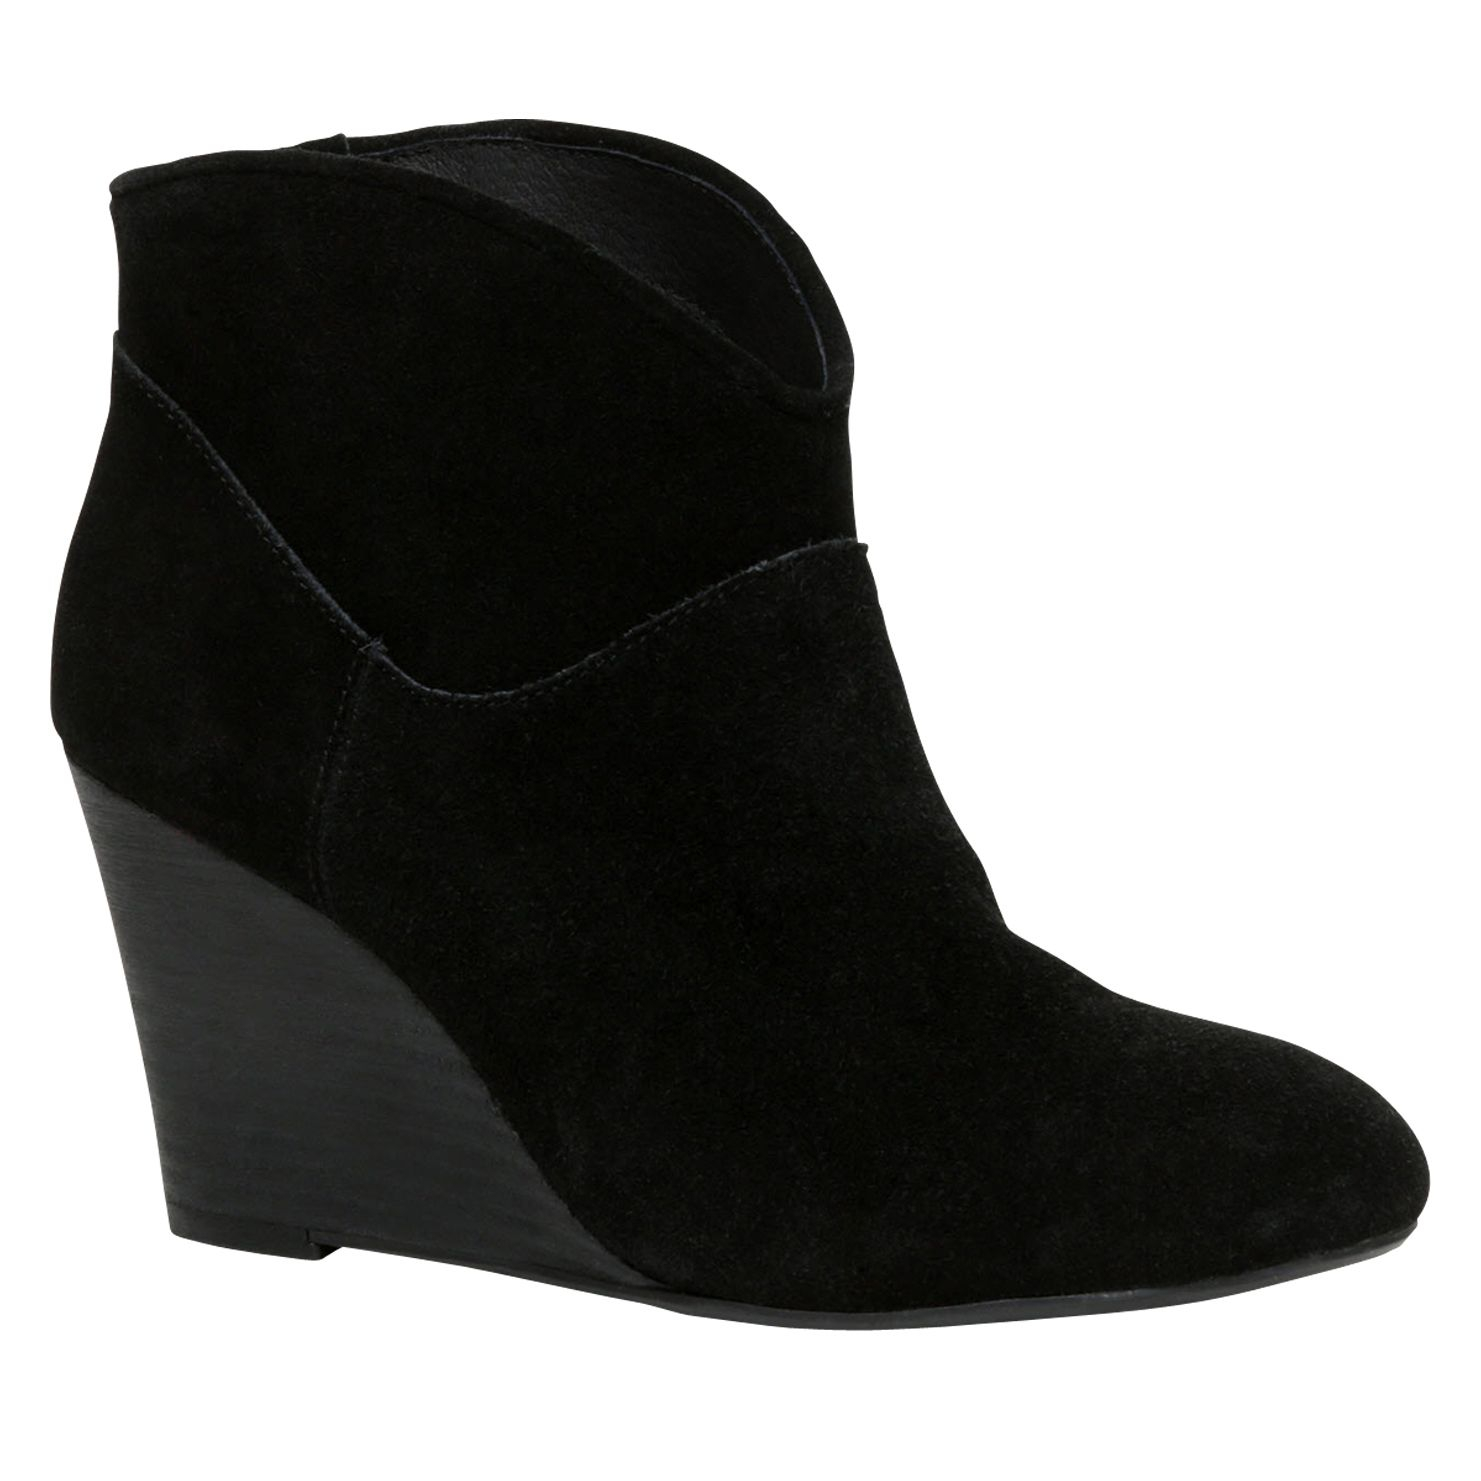 Aldo Figode Wedge Ankle Boots in Black | Lyst